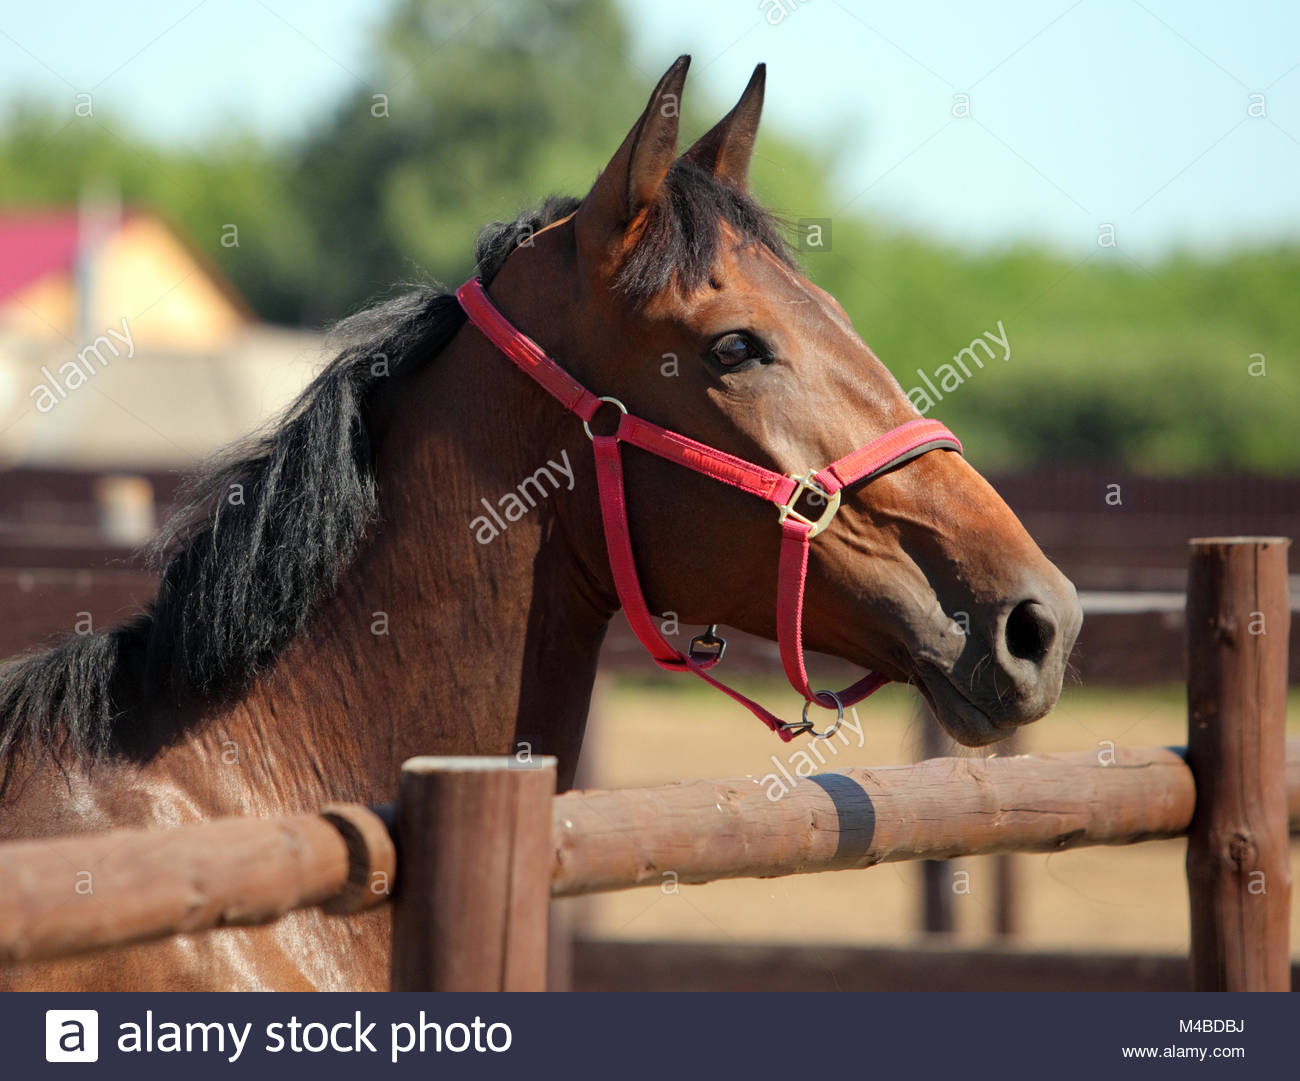 Thoroughbred bay horse against corral wooden fence background 1300x1081